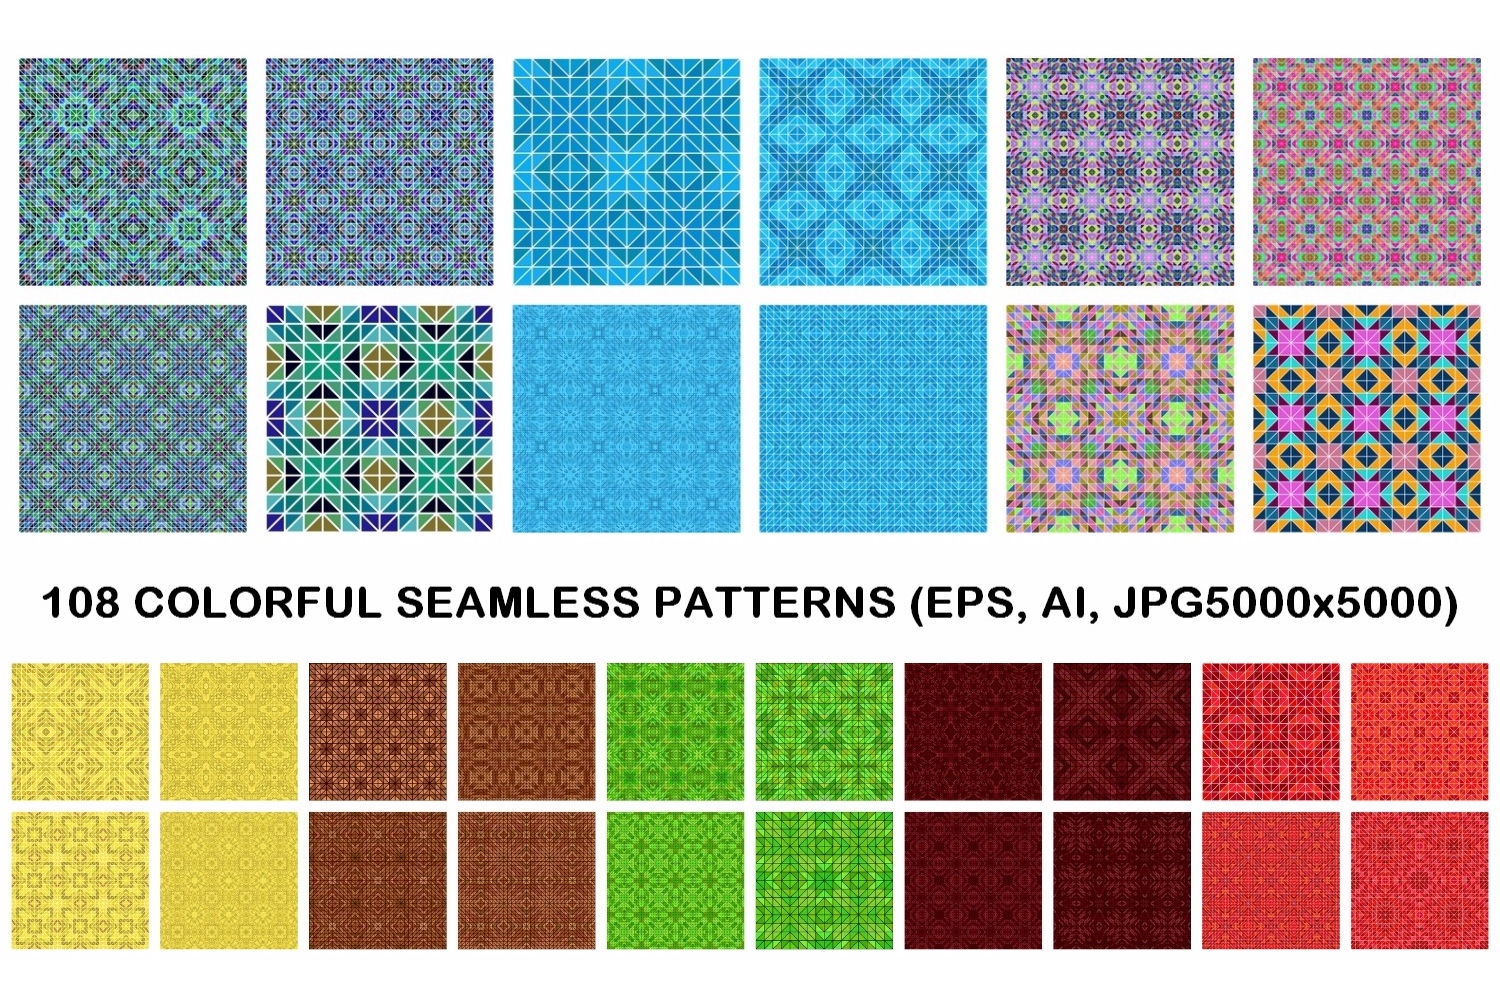 108 colorful seamless kaleidoscope triangle patterns (AI, EPS, JPG 5000x5000) example image 1